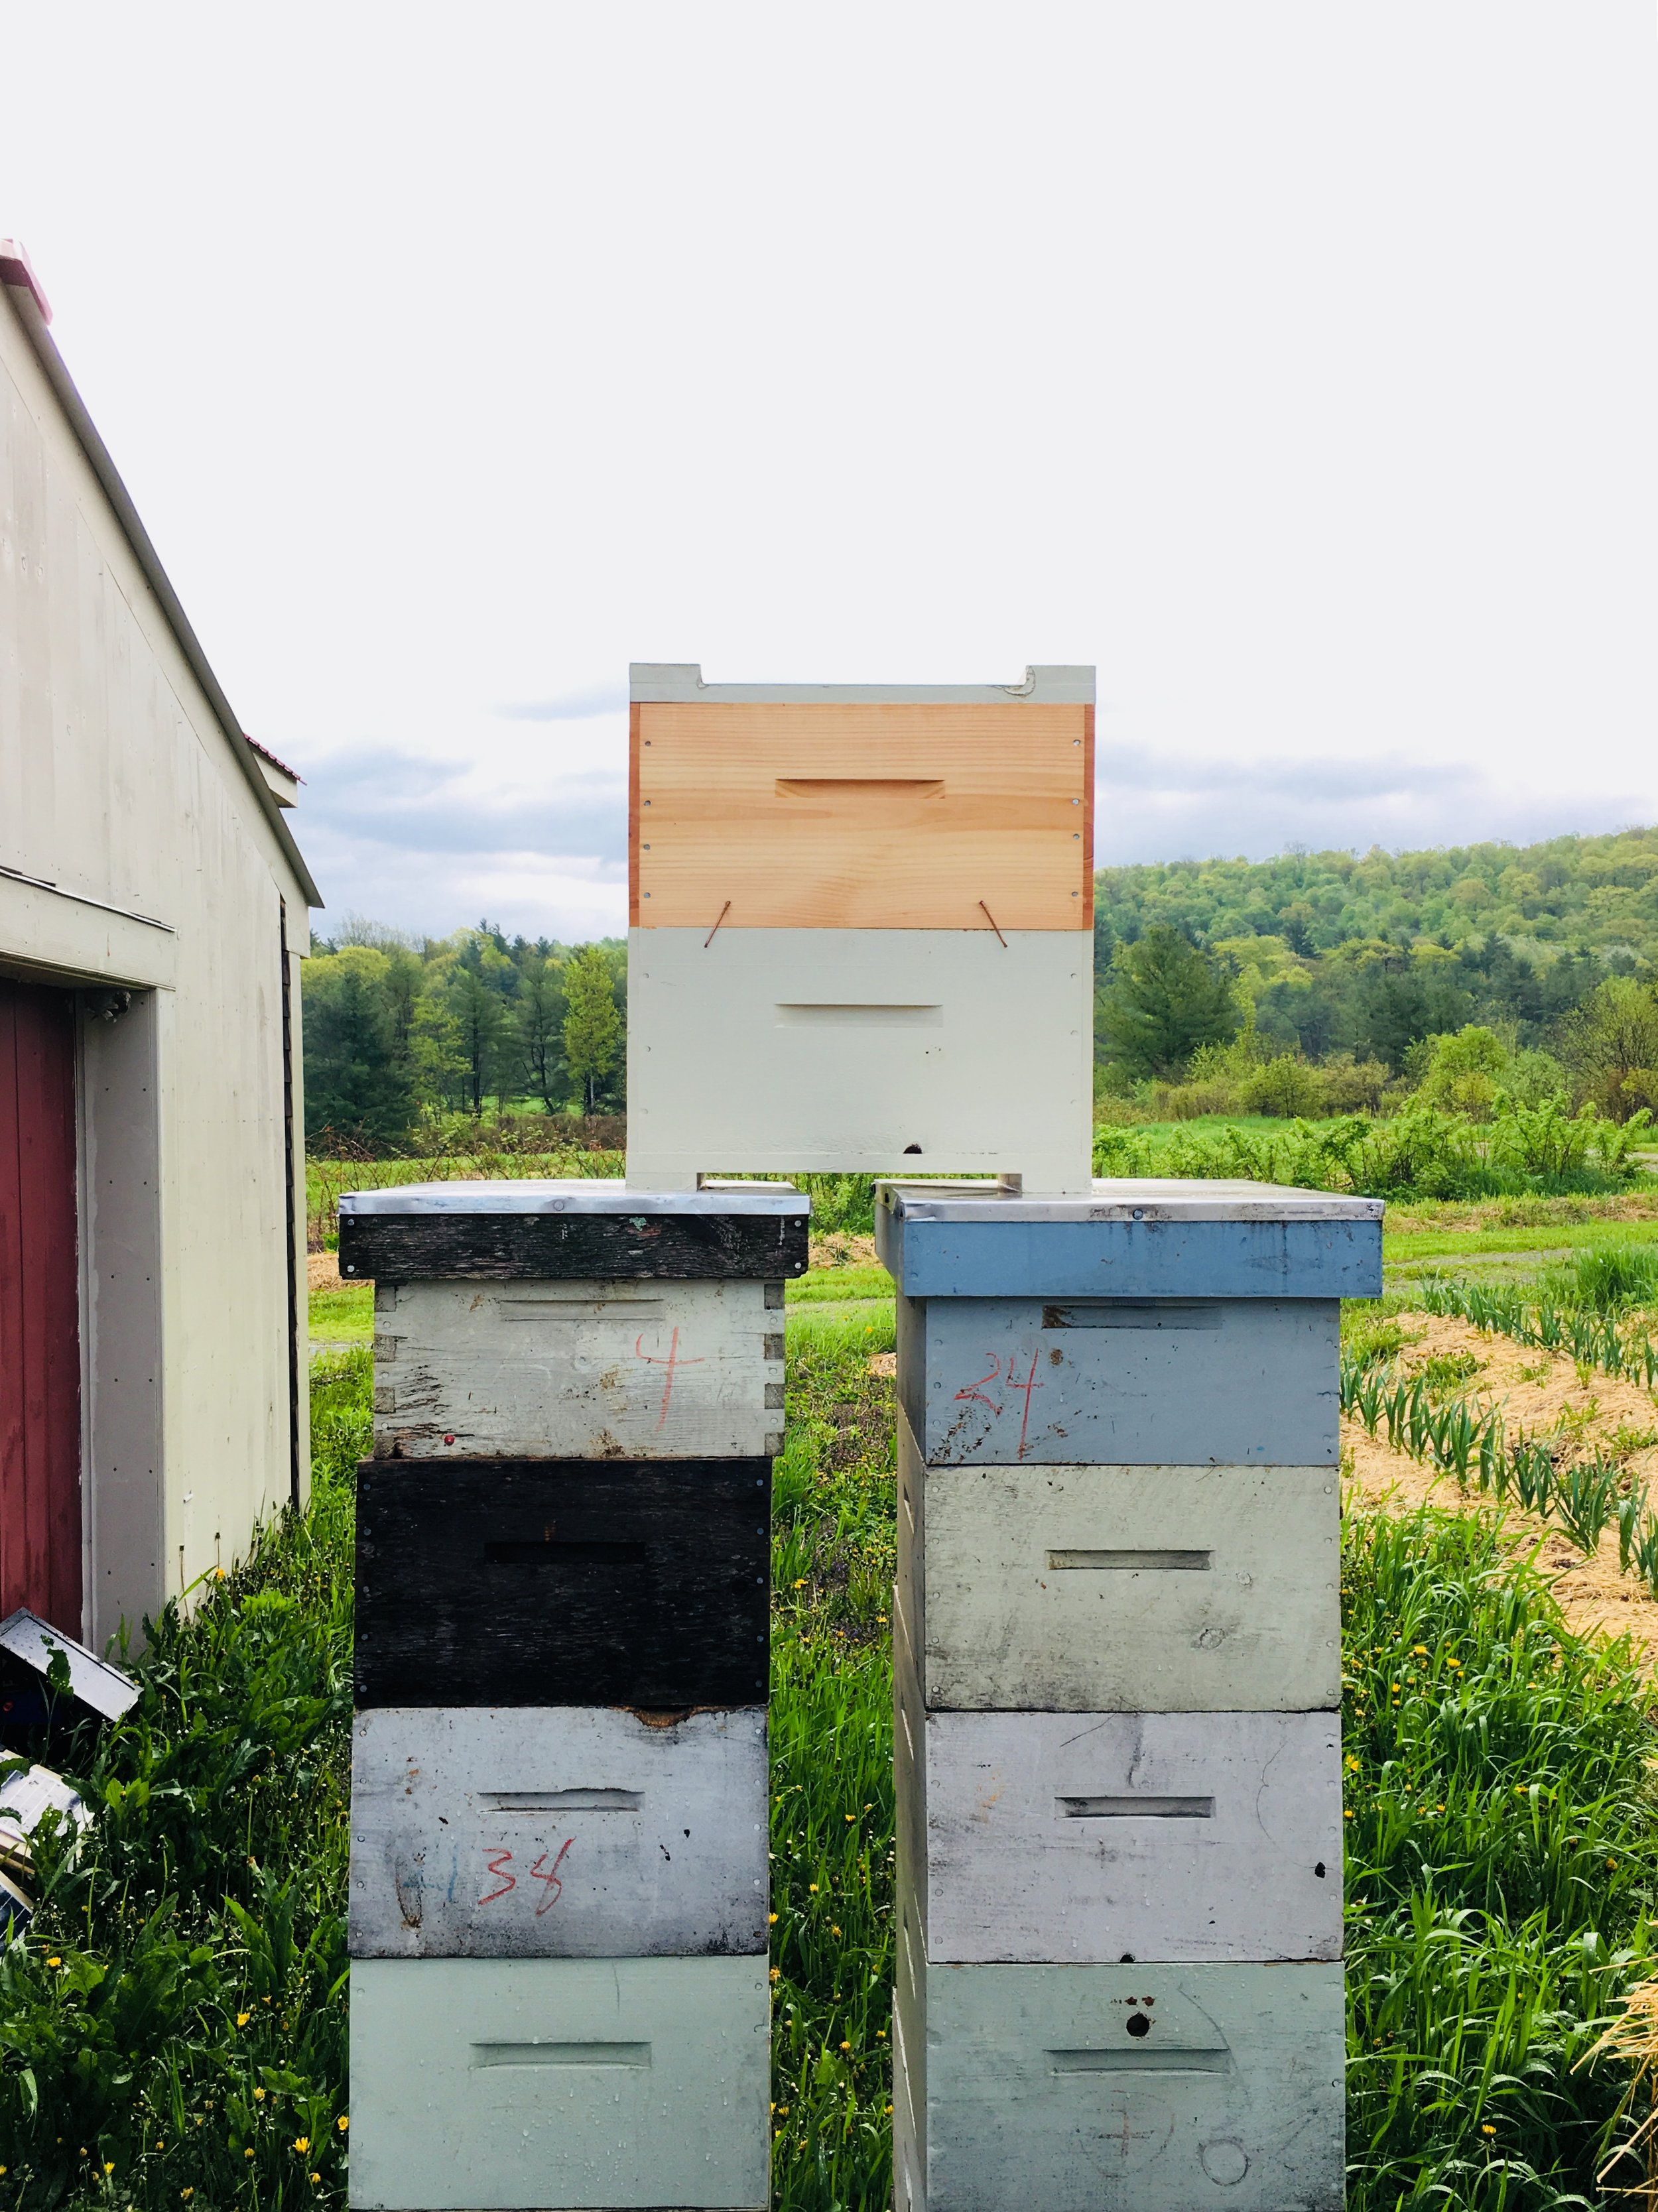 I love the color and hues of the bee boxes